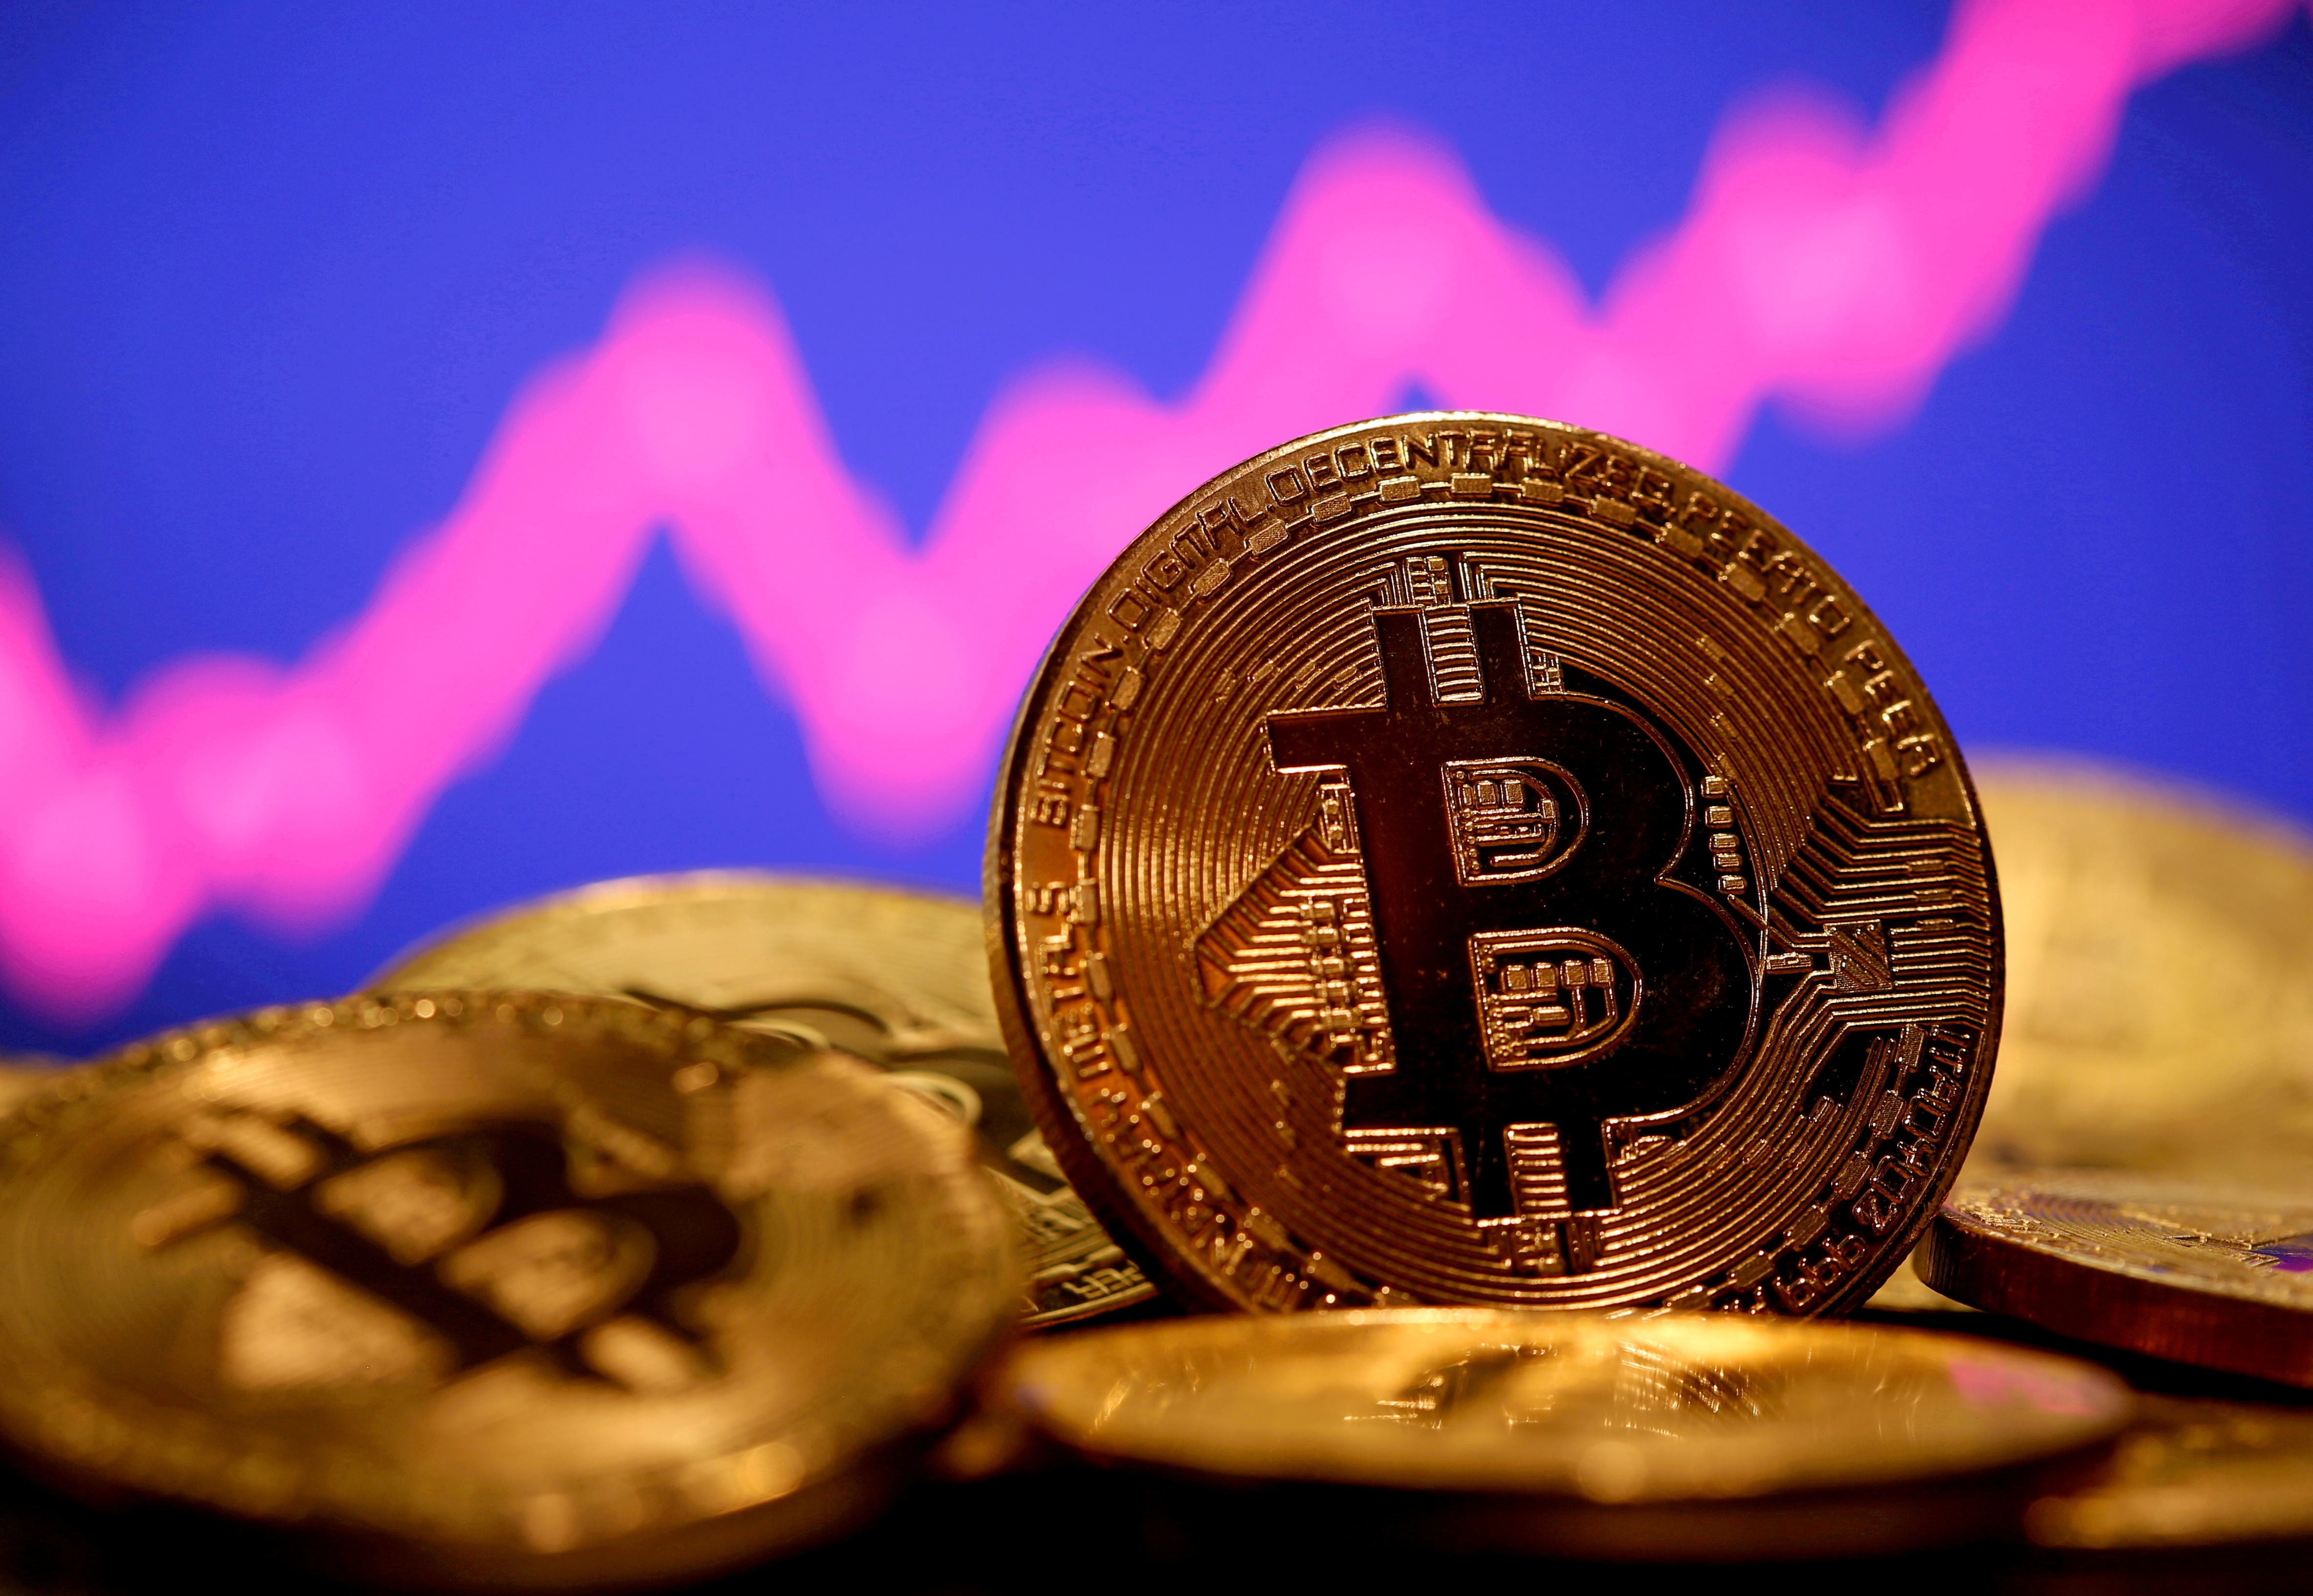 A representation of virtual currency Bitcoin is seen in front of a stock graph in this illustration taken January 8, 2021. REUTERS/Dado Ruvic/File Photo